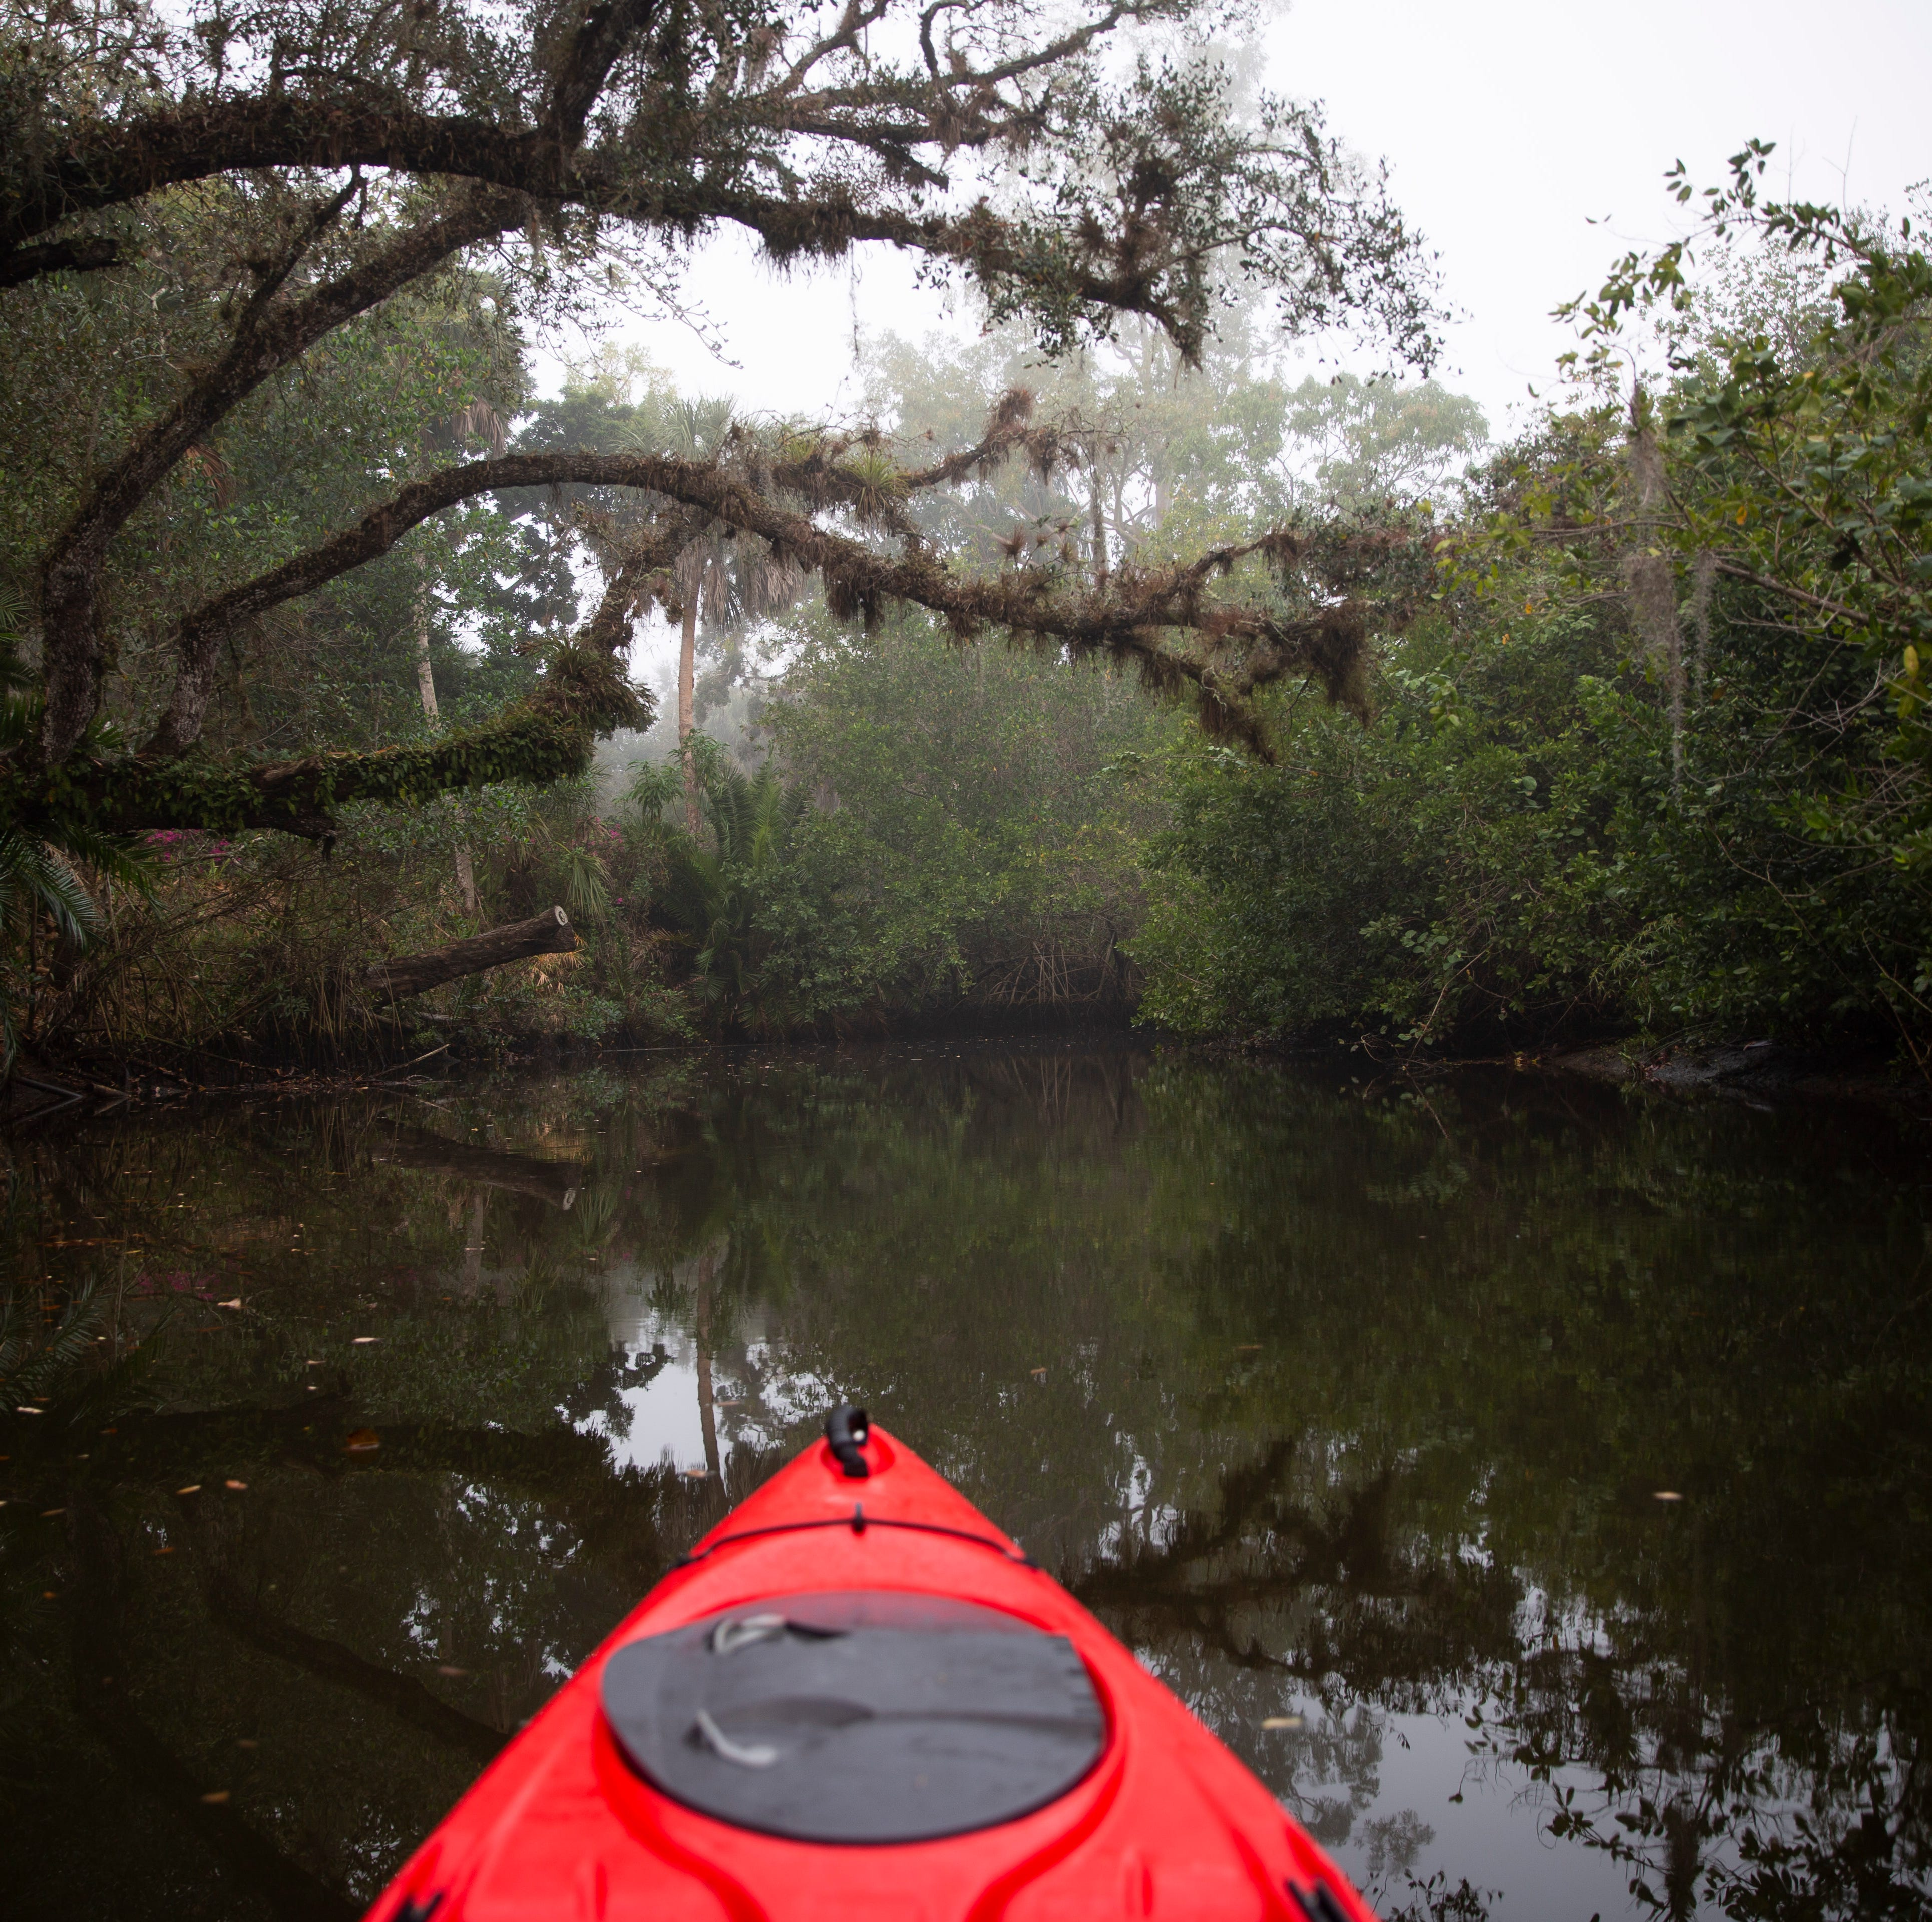 Our World: Kayaking on the Estero River